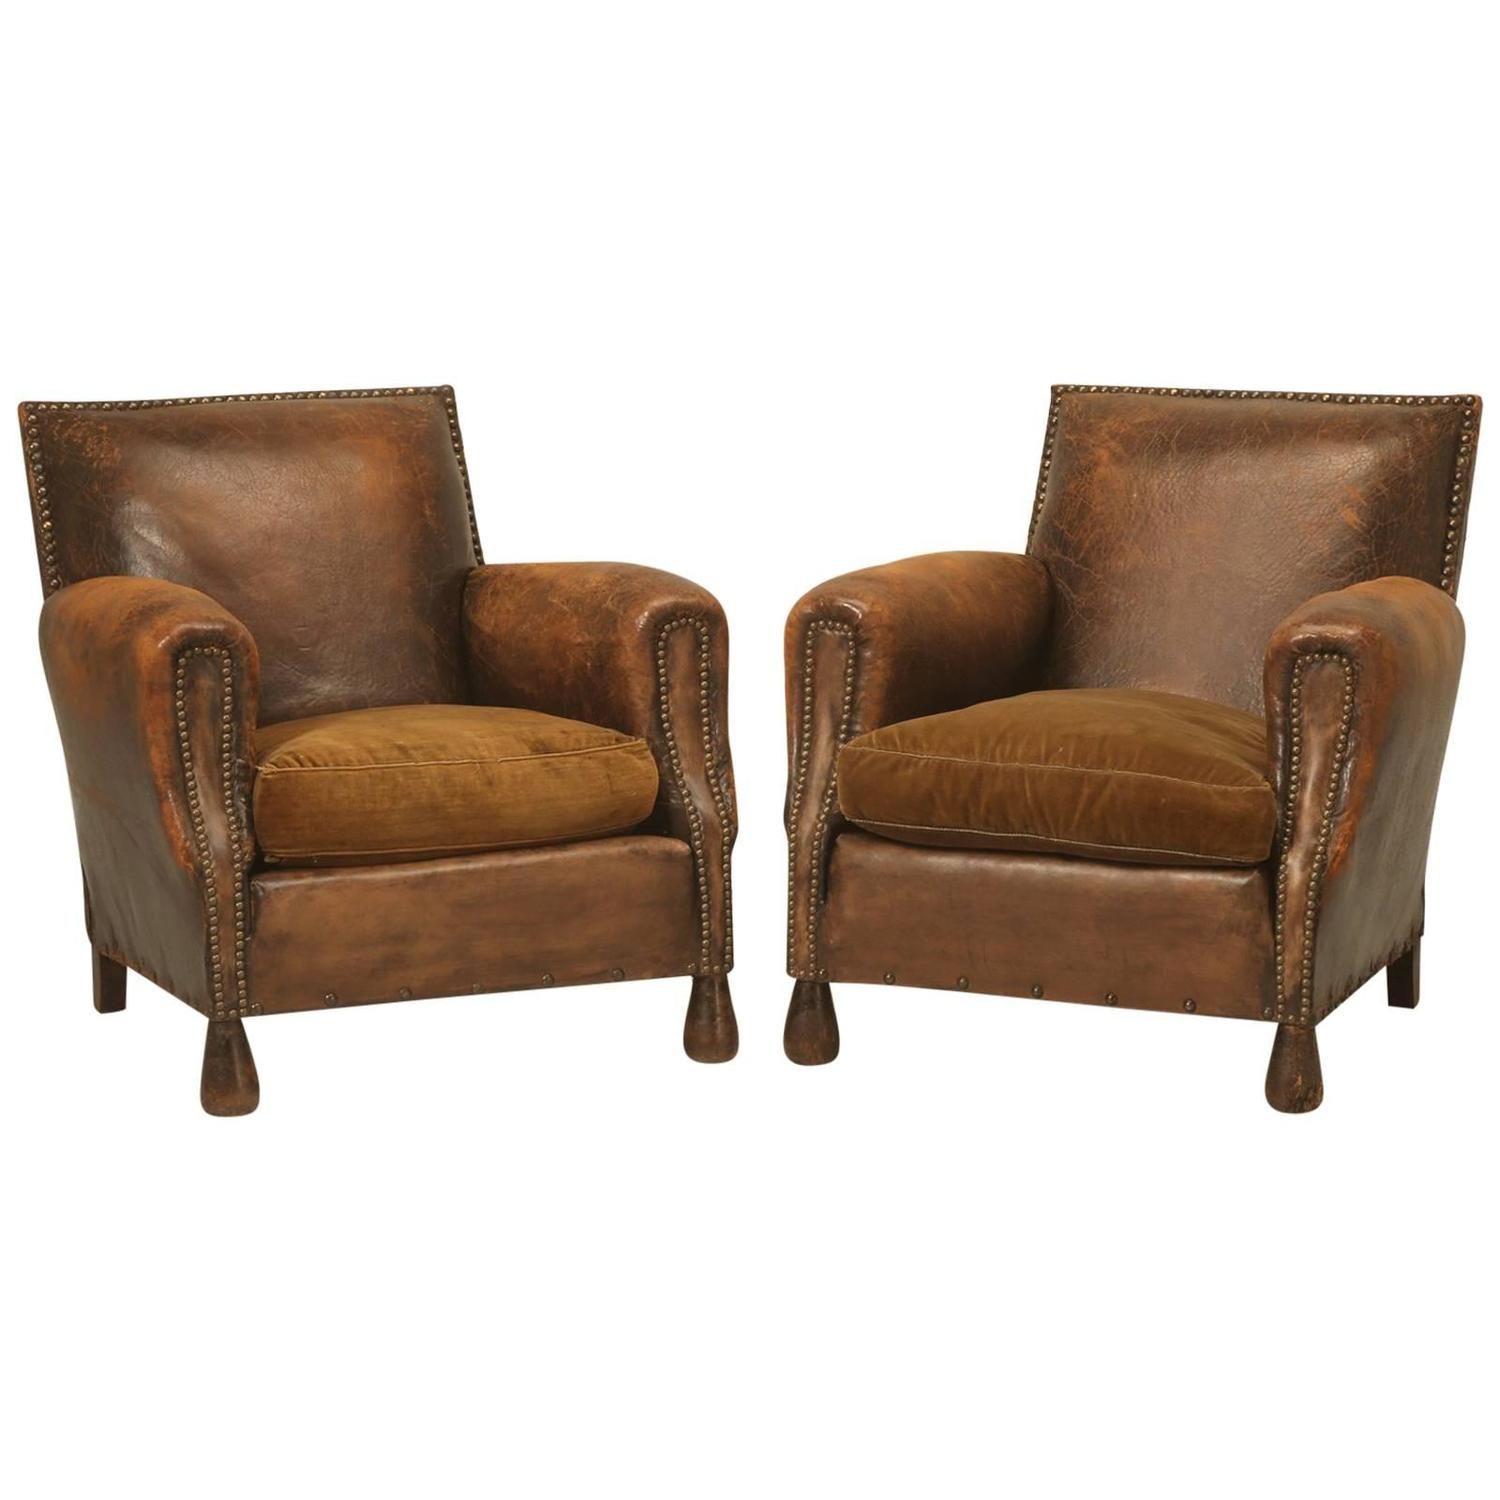 French Pair of Art Deco Leather Club Chairs in Original Leather